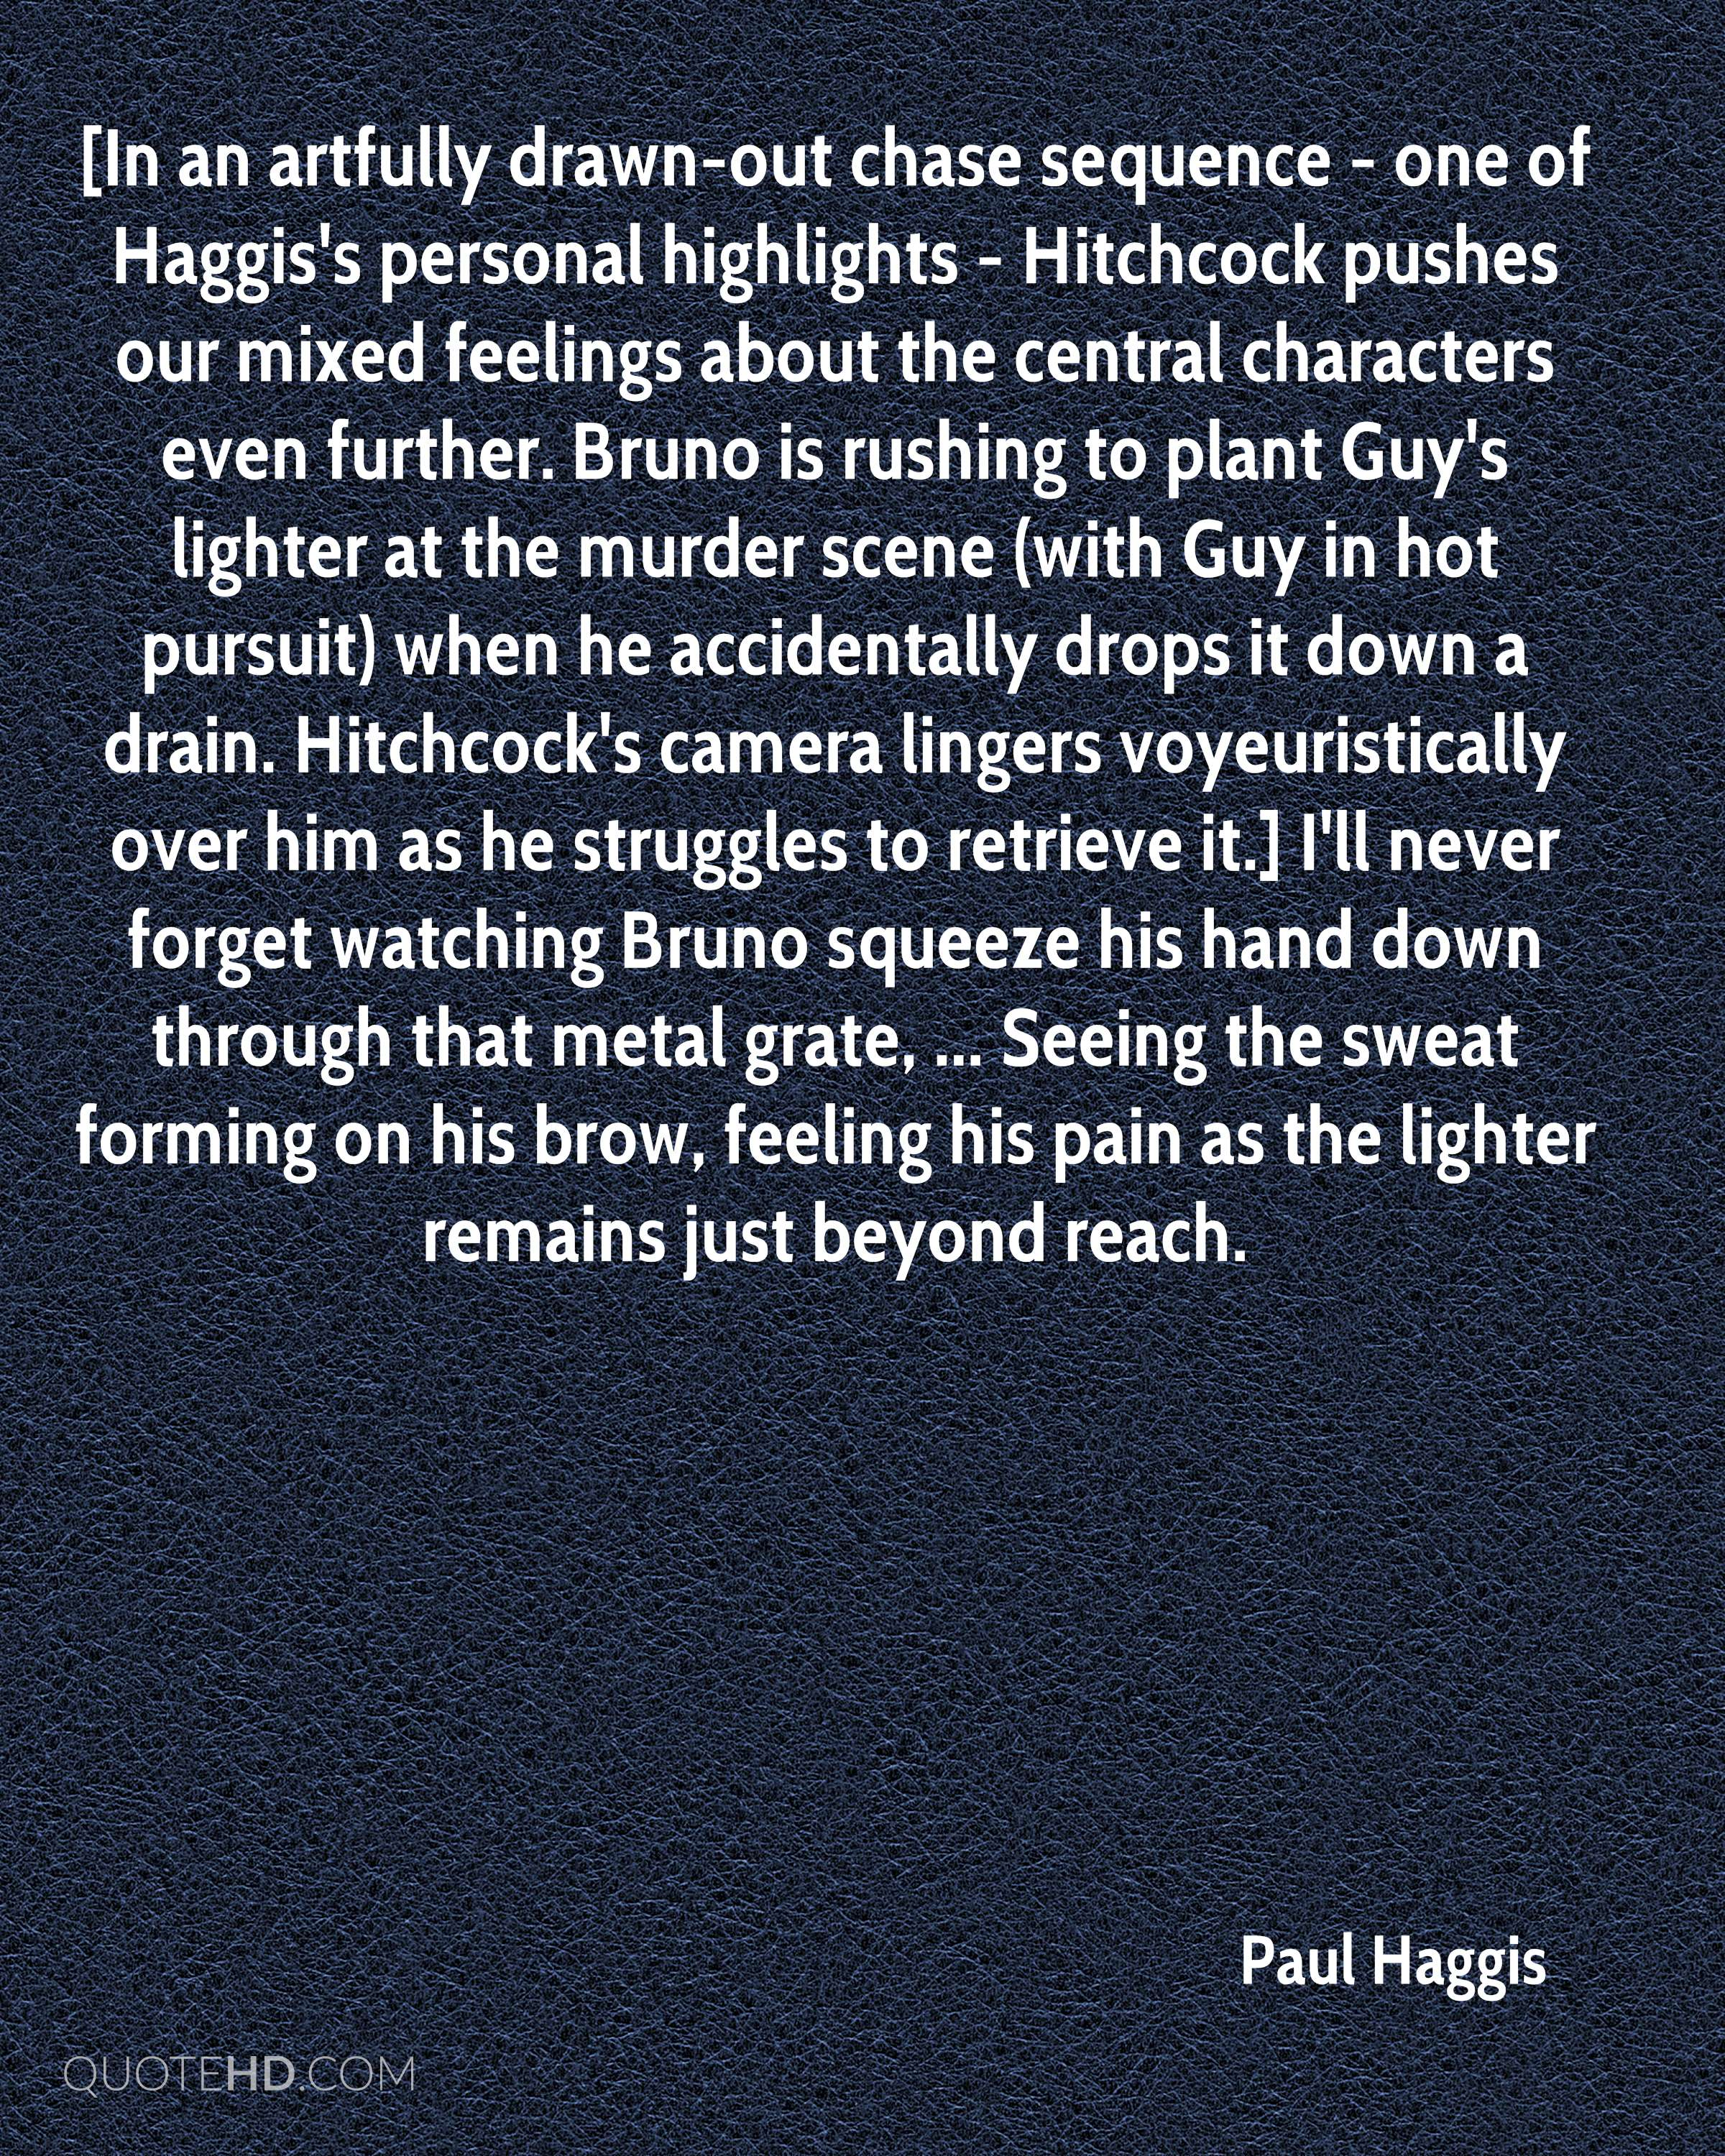 [In an artfully drawn-out chase sequence - one of Haggis's personal highlights - Hitchcock pushes our mixed feelings about the central characters even further. Bruno is rushing to plant Guy's lighter at the murder scene (with Guy in hot pursuit) when he accidentally drops it down a drain. Hitchcock's camera lingers voyeuristically over him as he struggles to retrieve it.] I'll never forget watching Bruno squeeze his hand down through that metal grate, ... Seeing the sweat forming on his brow, feeling his pain as the lighter remains just beyond reach.